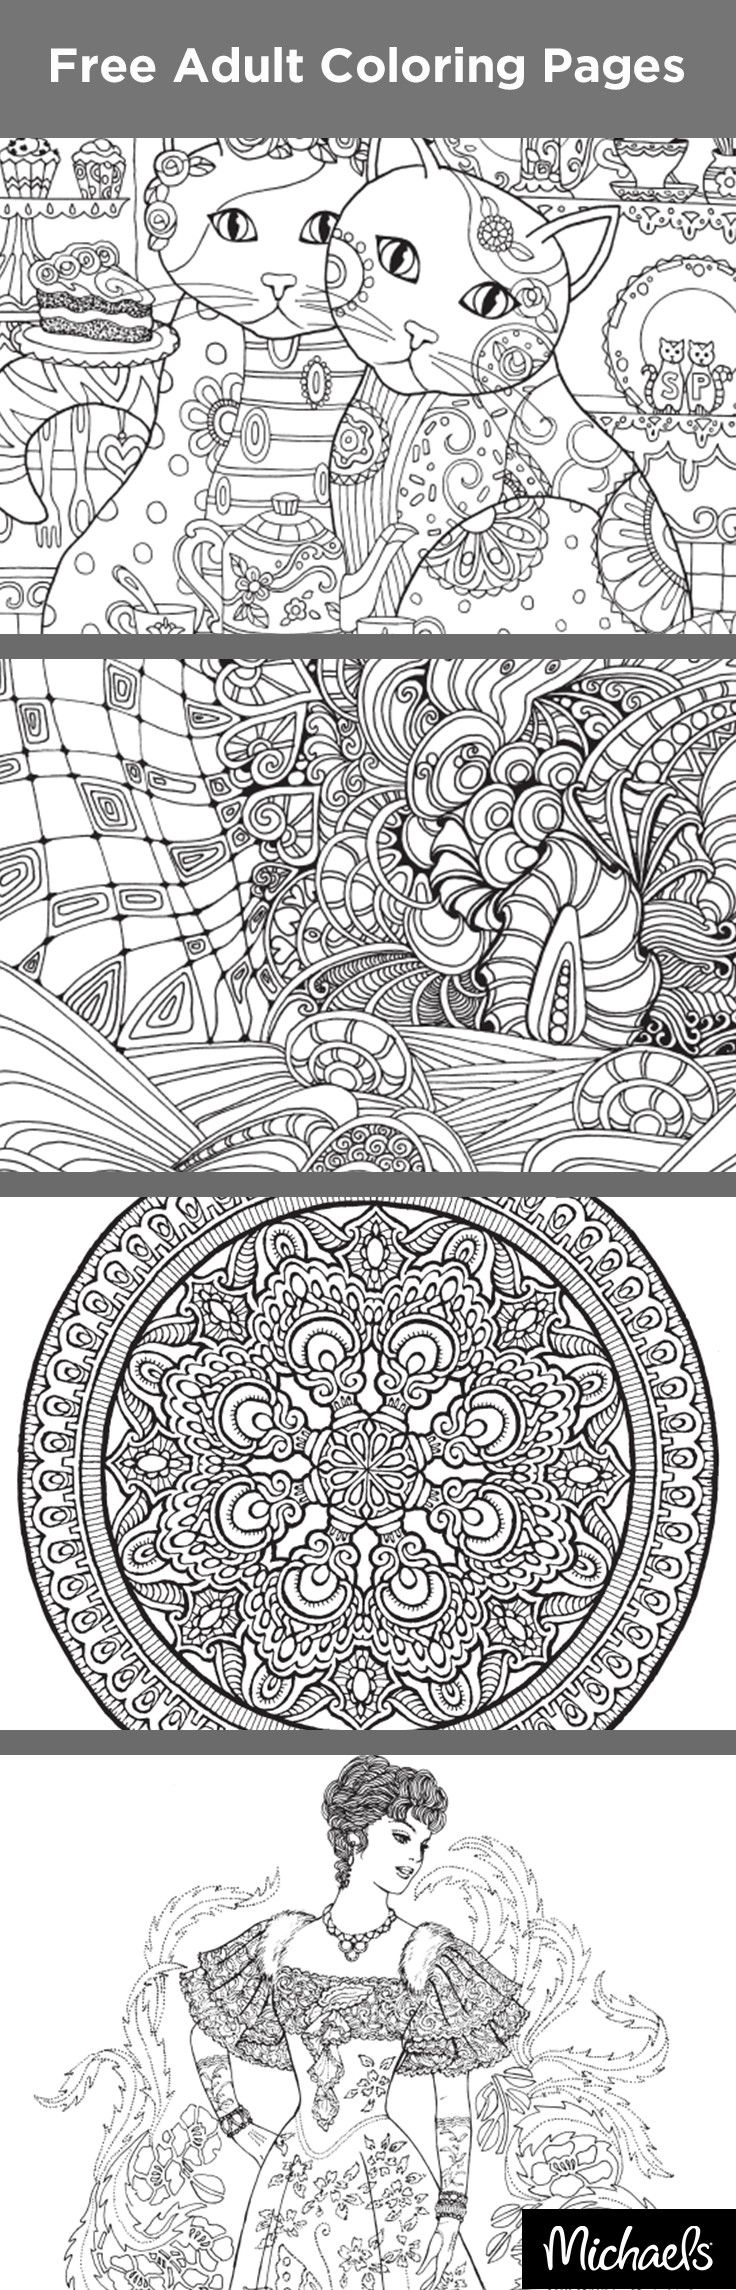 Coloring Has Proven To Reduce Stress And Help You Relax All While Bringing Out Your Creativity Get Started With Some Free Pages From Michaels